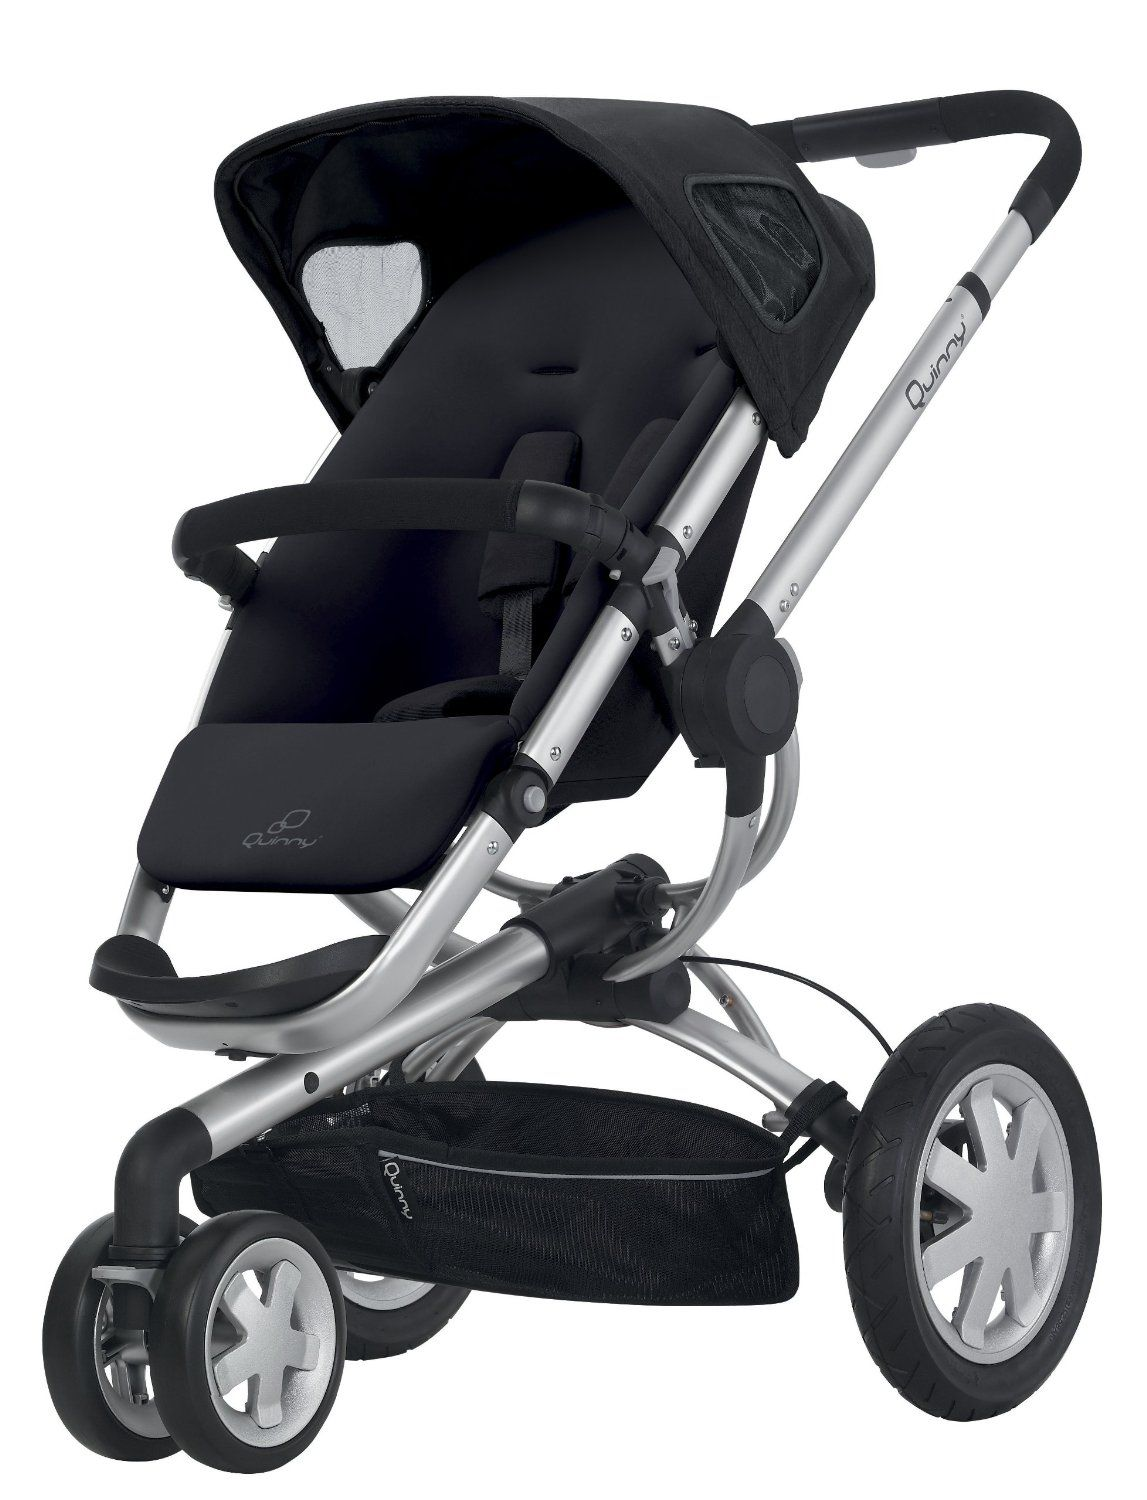 What are the best European Baby Strollers? Best Baby